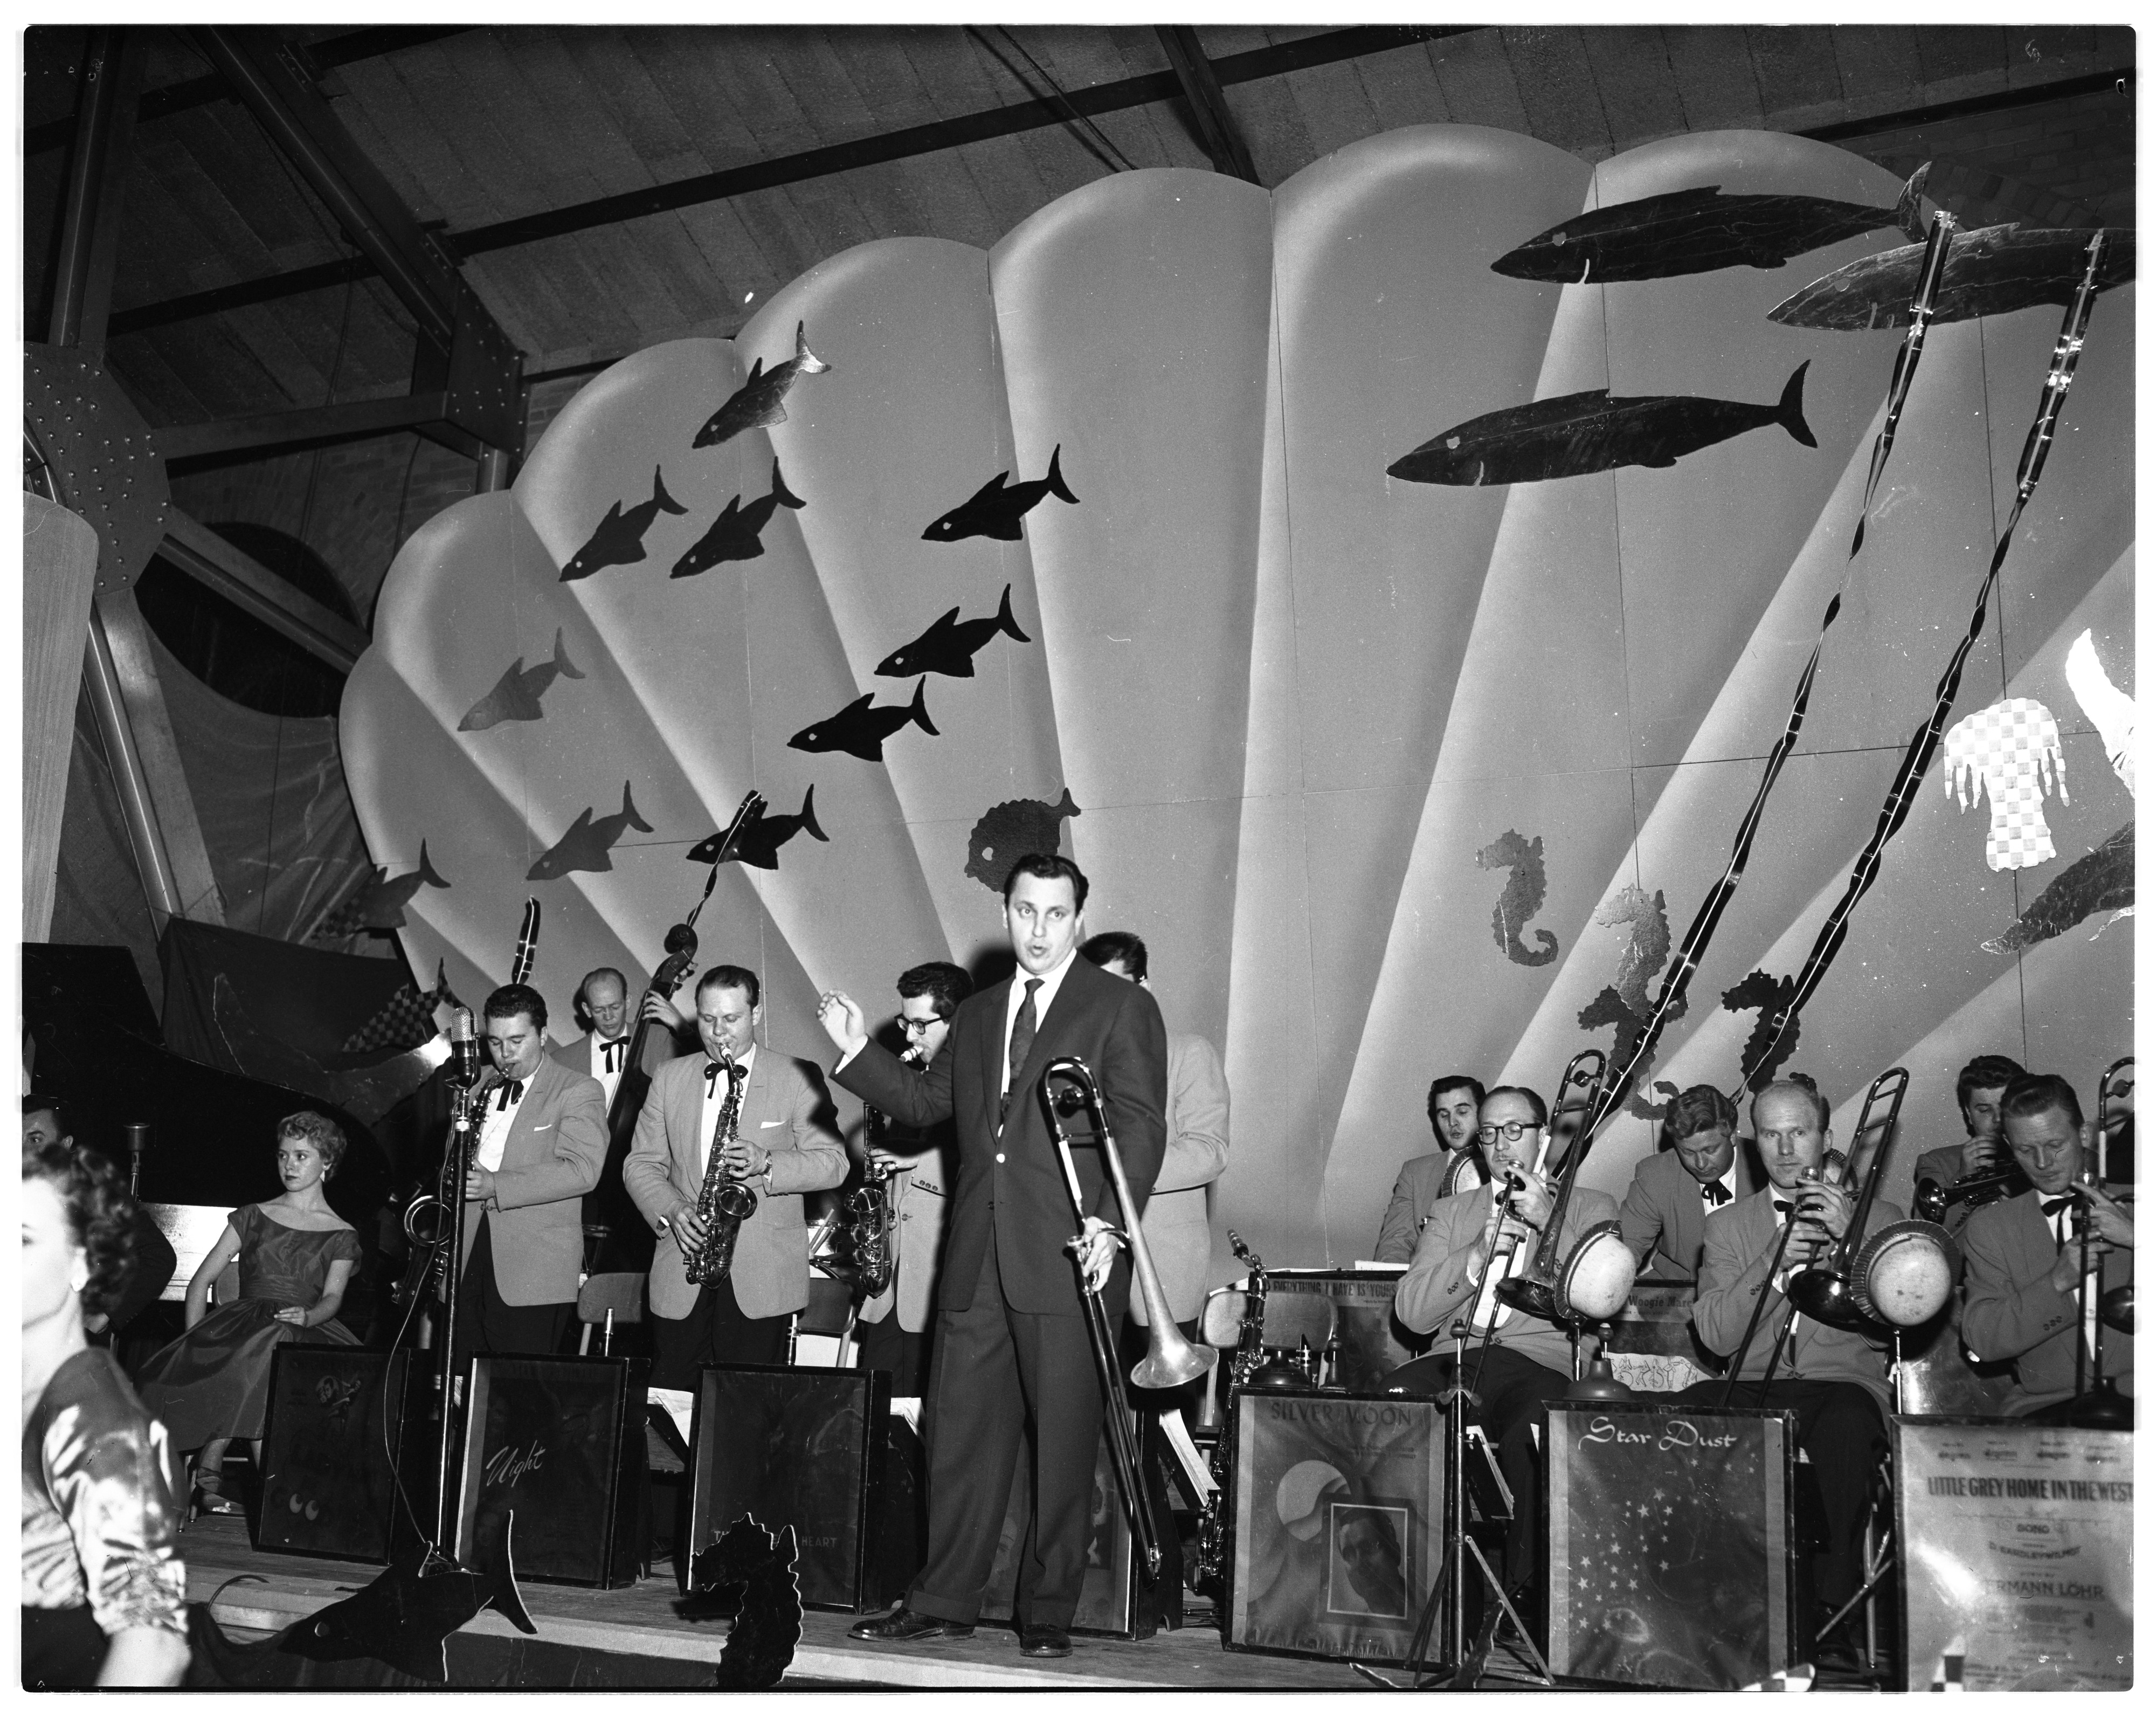 Bandleader Buddy Morrow and his band play at the J-Hop, February 5, 1954 image